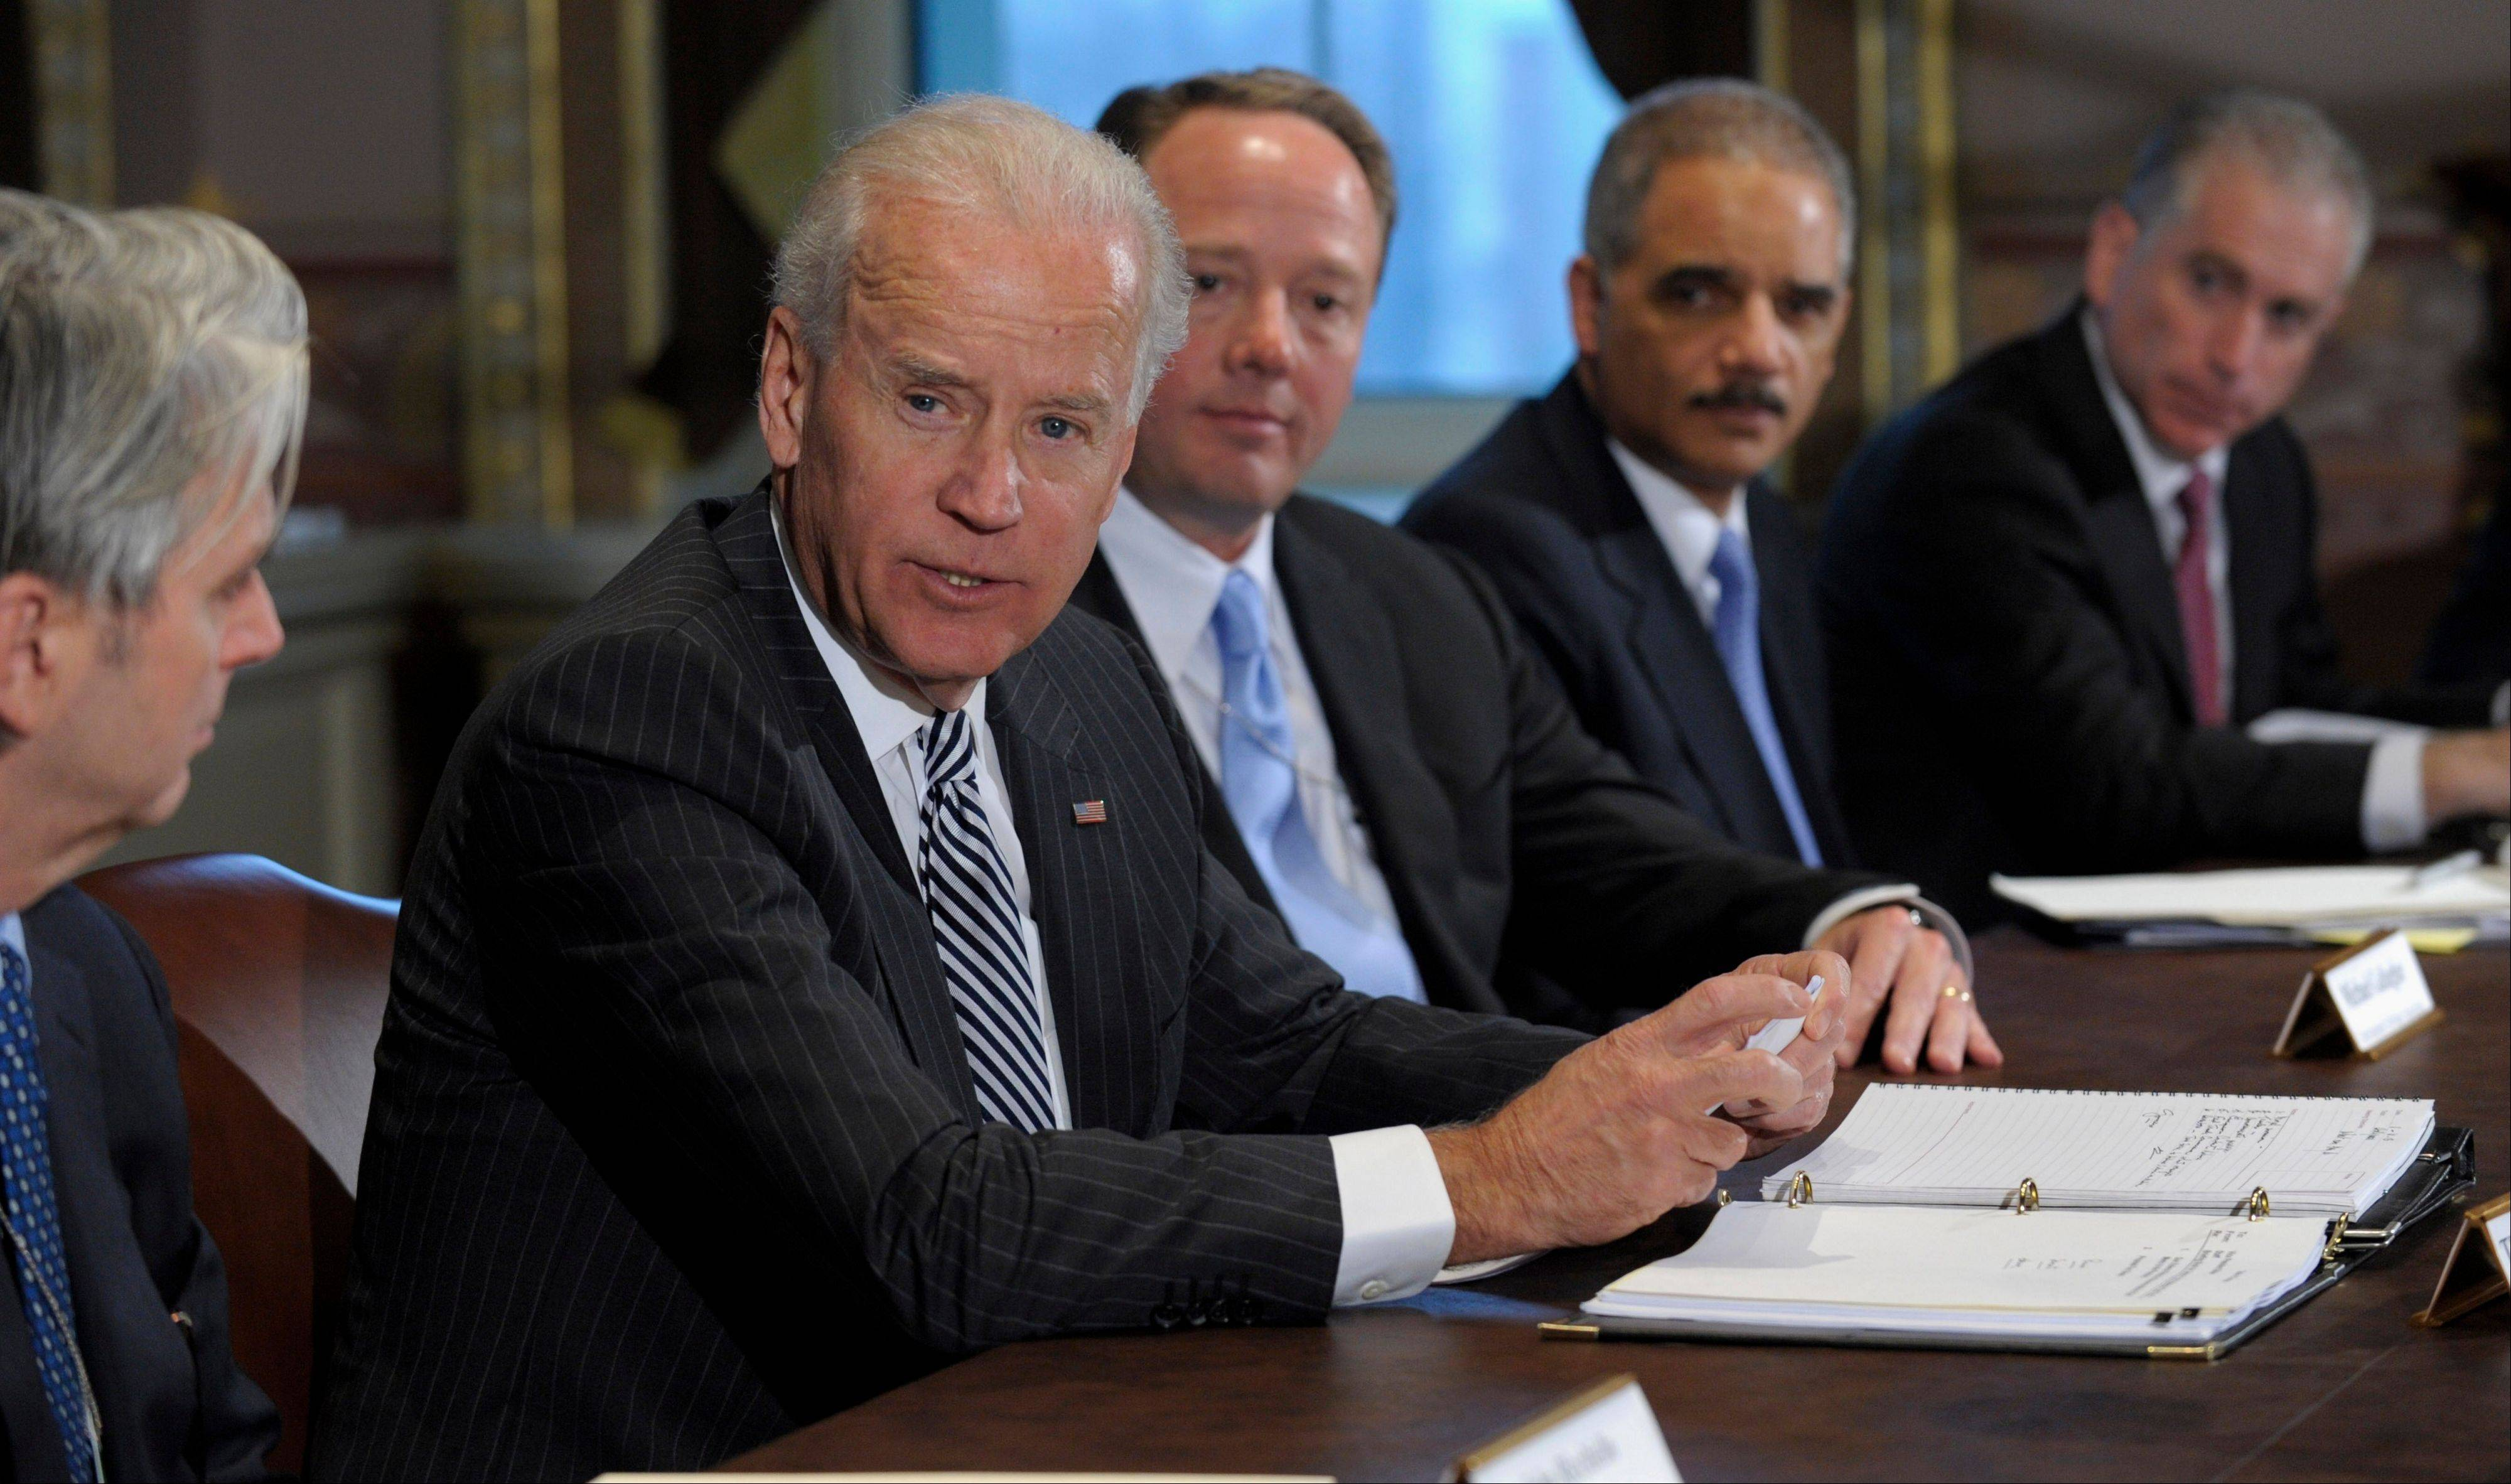 Vice President Joe Biden, second from left, with Attorney General Eric Holder, second from right, speaks Friday during a meeting with representatives from the video game industry in the Eisenhower Executive Office Building on the White House complex in Washington.